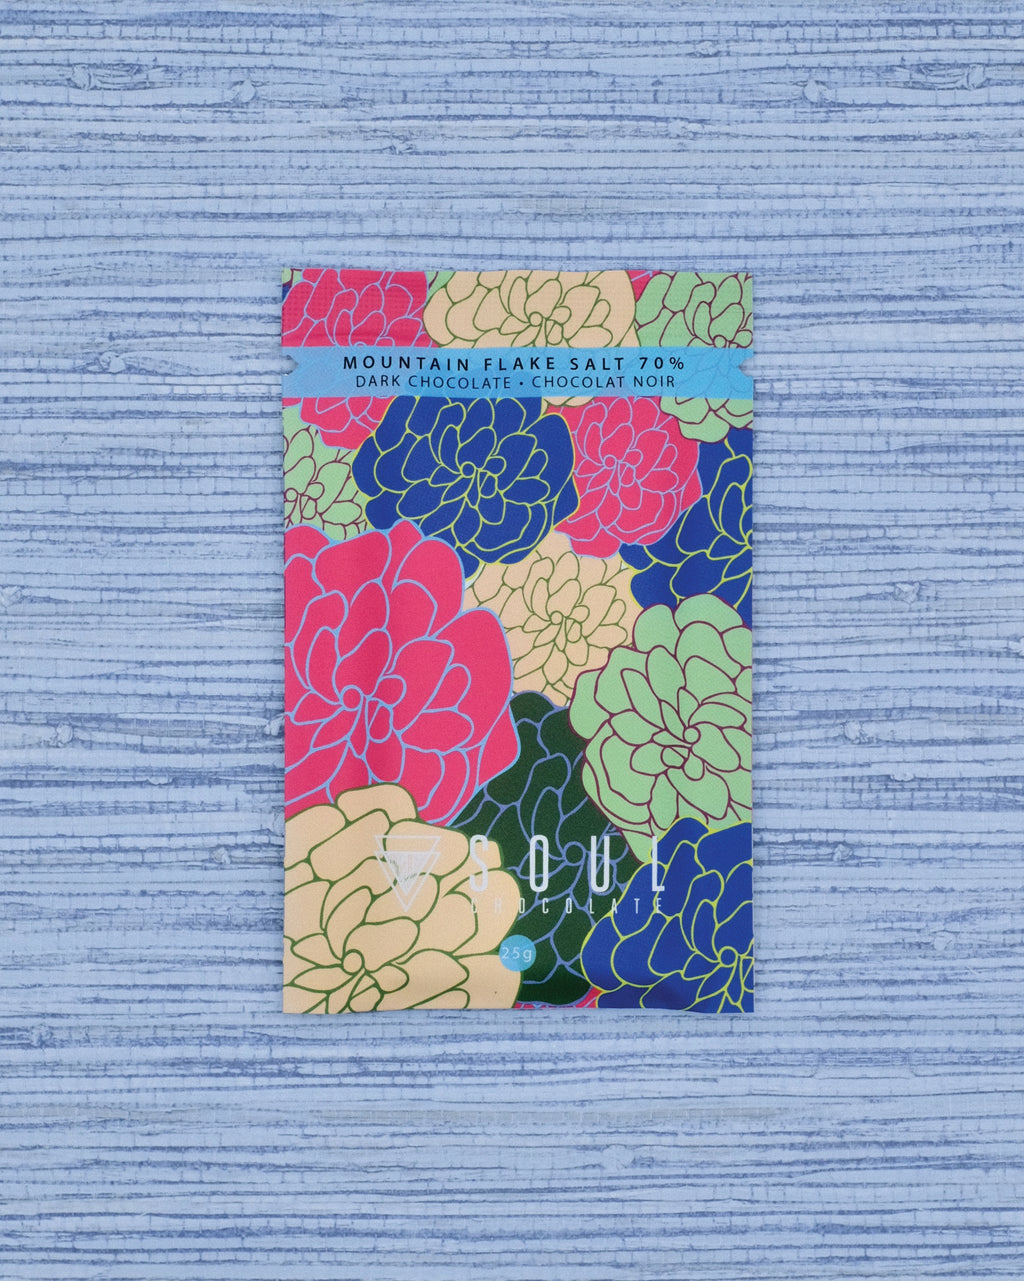 The front of our Mountain Flake Salt 70% Dark Chocolate Bar has a fun floral pattern, representing the mixing of flavours (which you'll find in this bar).